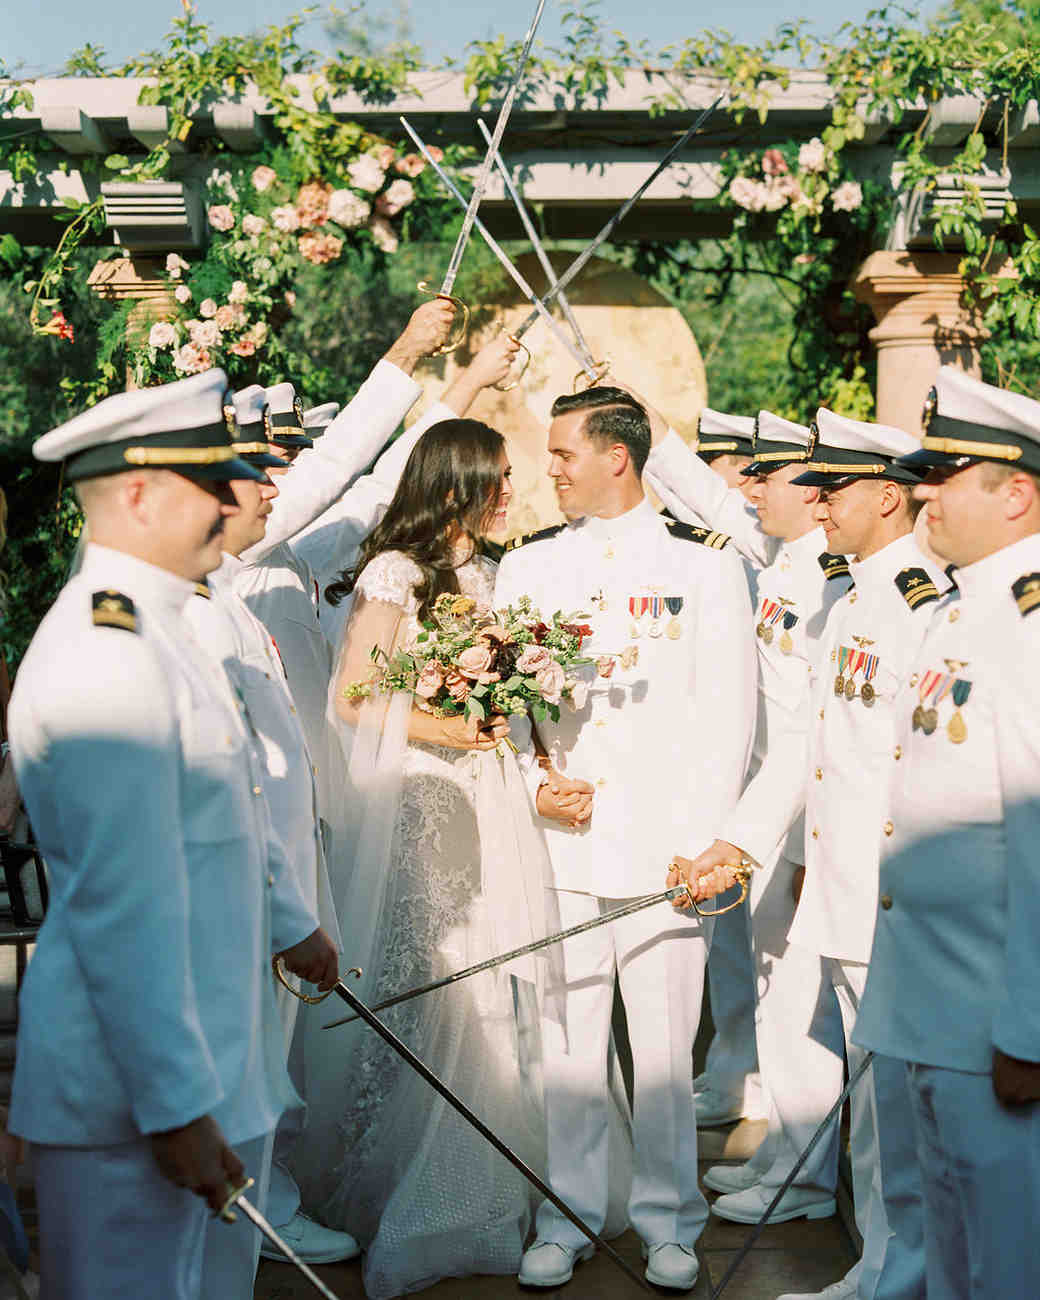 paige zack wedding recessional with swords